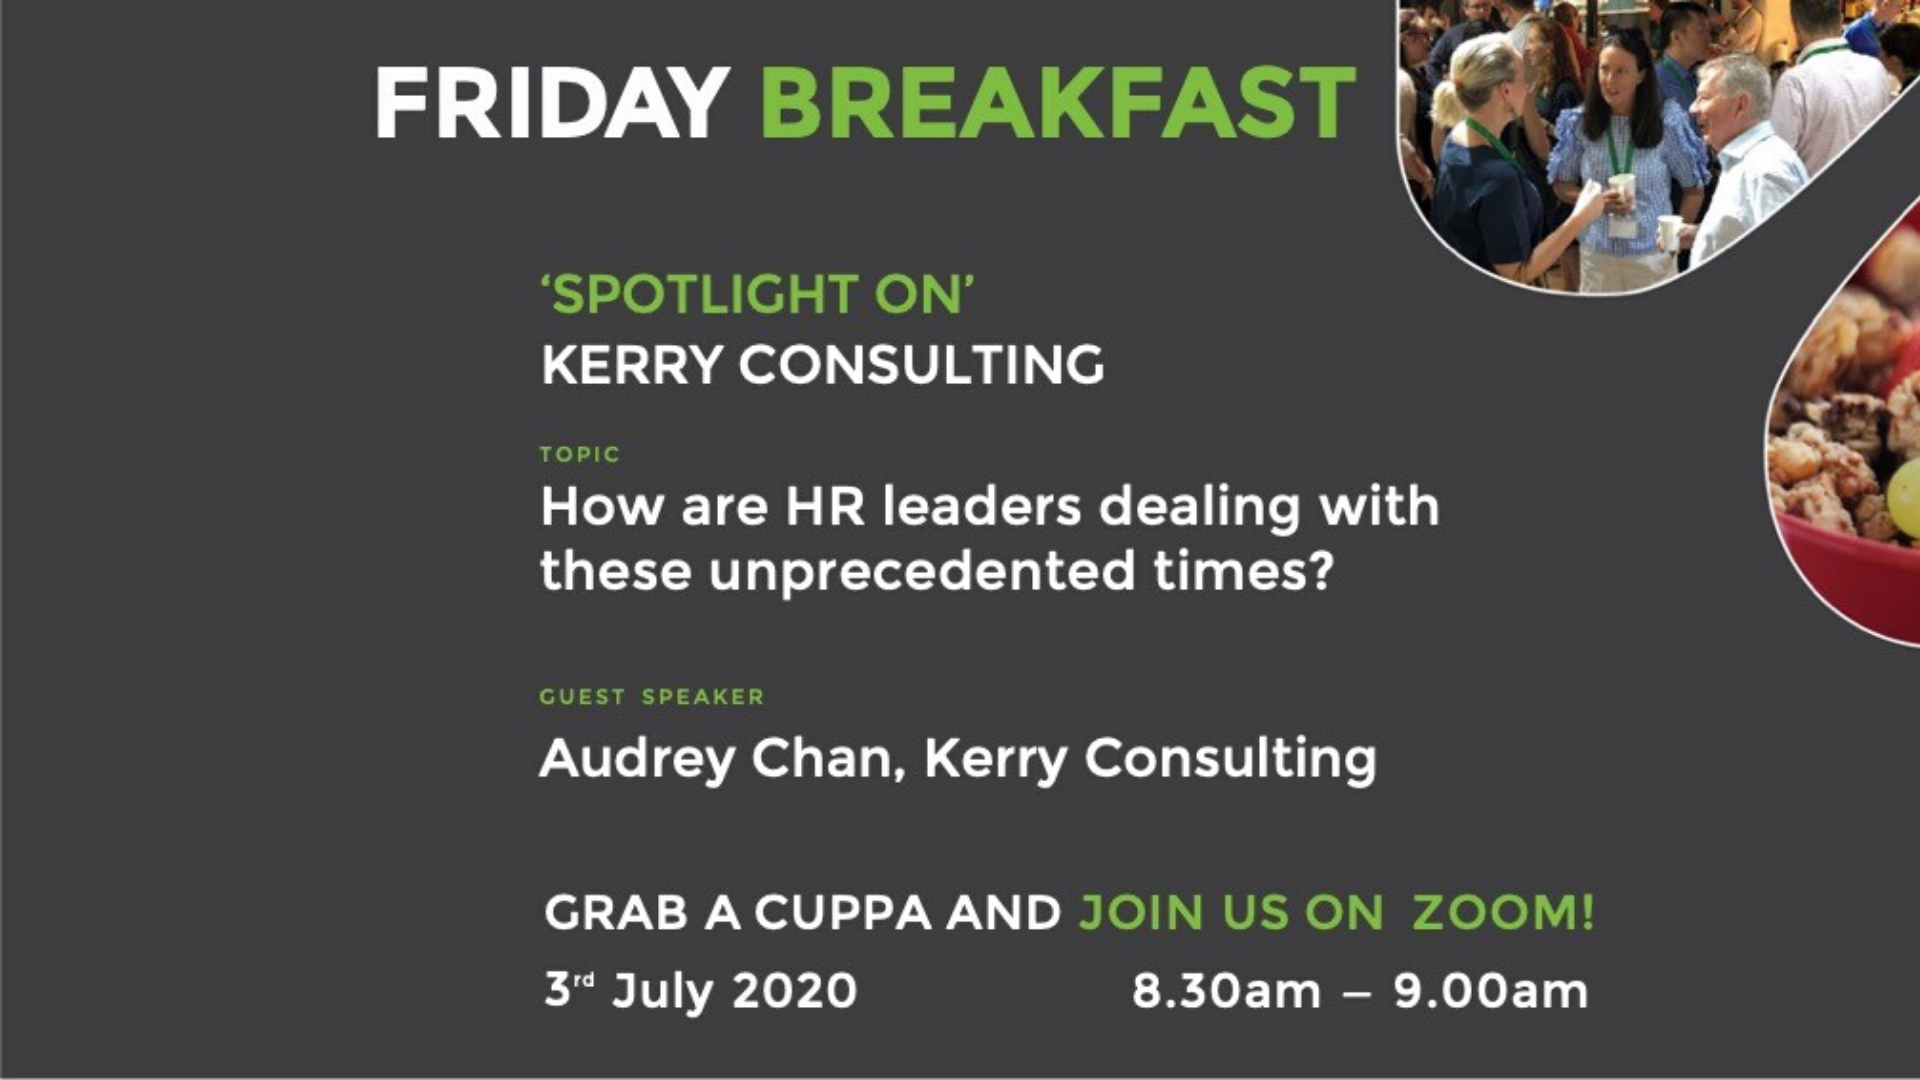 Friday Breakfast with Audrey Chan, Kerry Consulting